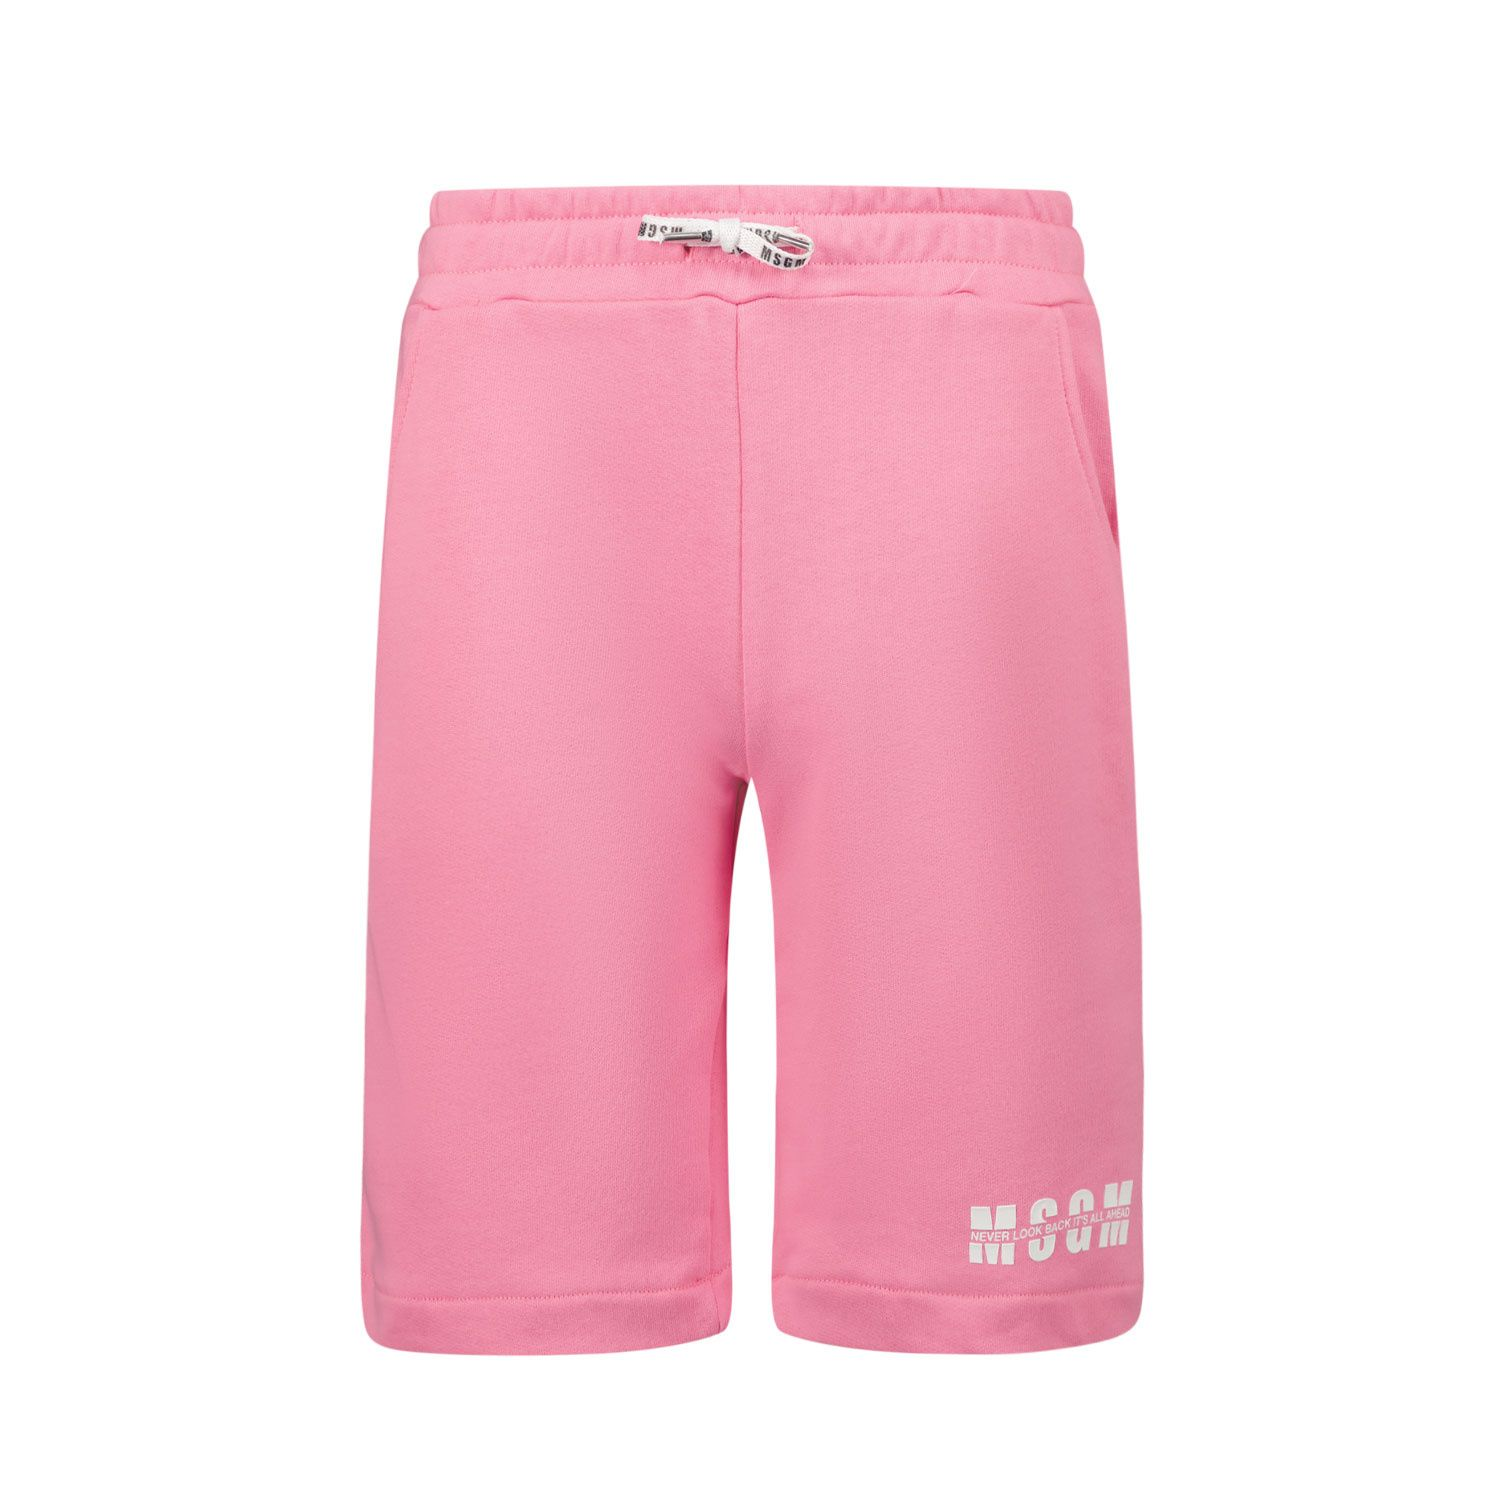 Picture of MSGM MS026821 kids shorts pink